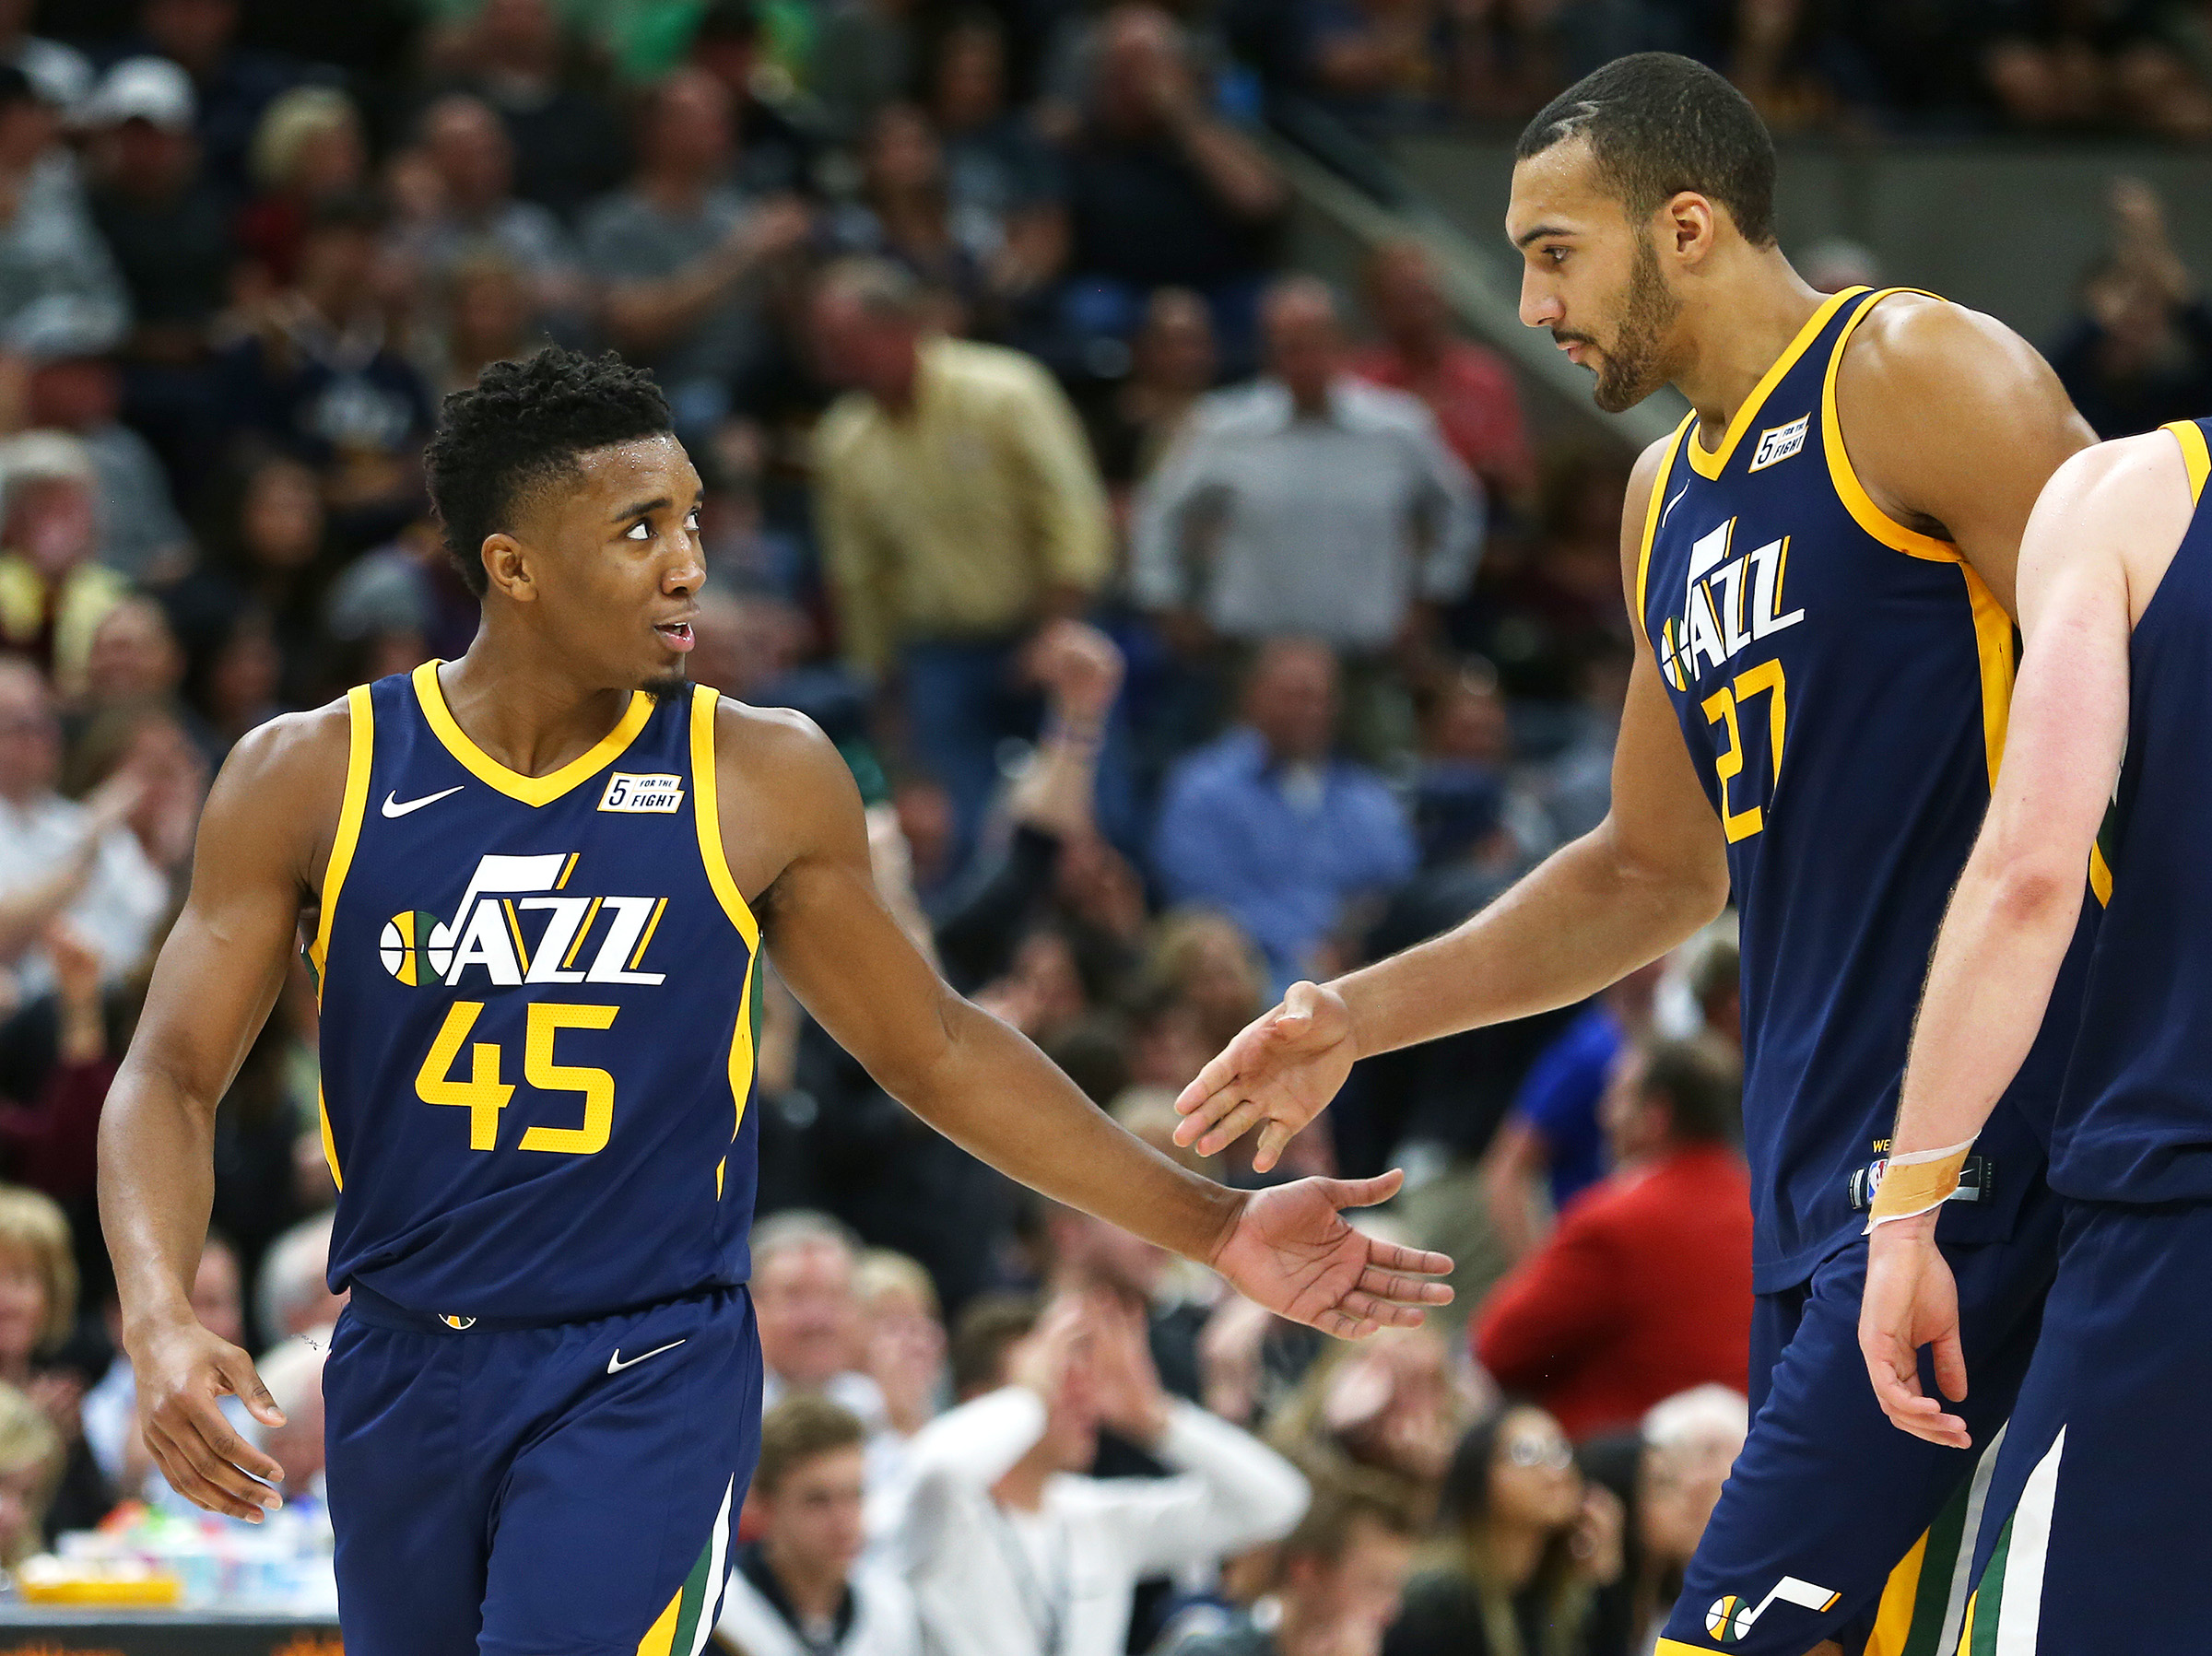 Utah Jazz guard Donovan Mitchell (45) and Utah Jazz center Rudy Gobert (27) give each other five during a timeout as the Utah Jazz and the L.A. Lakers play at Vivint Arena in Salt Lake City on Saturday, Oct. 28, 2017.